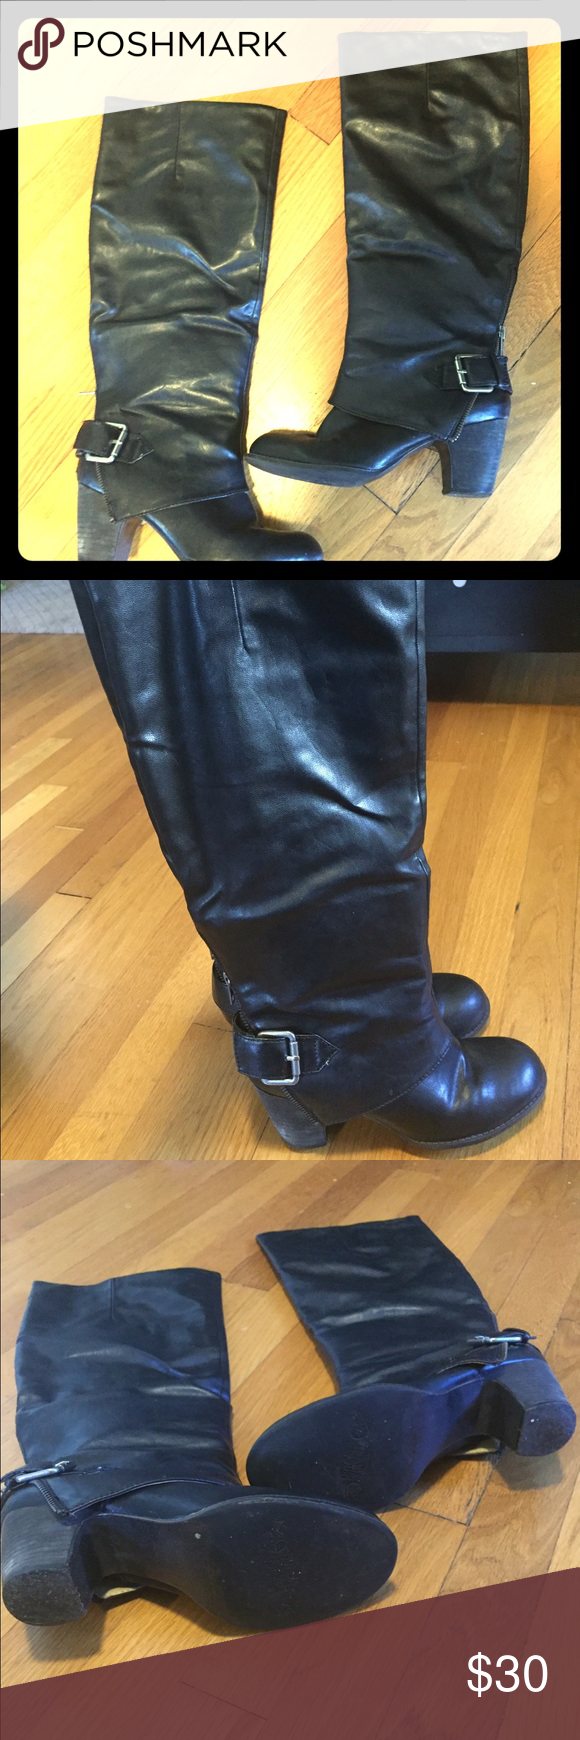 🍁Nine West Black Boots🍁 Bought at Macy's for over $100. They are great boots and very comfy. The only flaw is some of the finish has scuffed off where the creases are on the top inside of the foot. Not noticeable when wearing and may be able to be repaired. Still in very great condition. Price reflects flaws. Nine West Shoes Heeled Boots